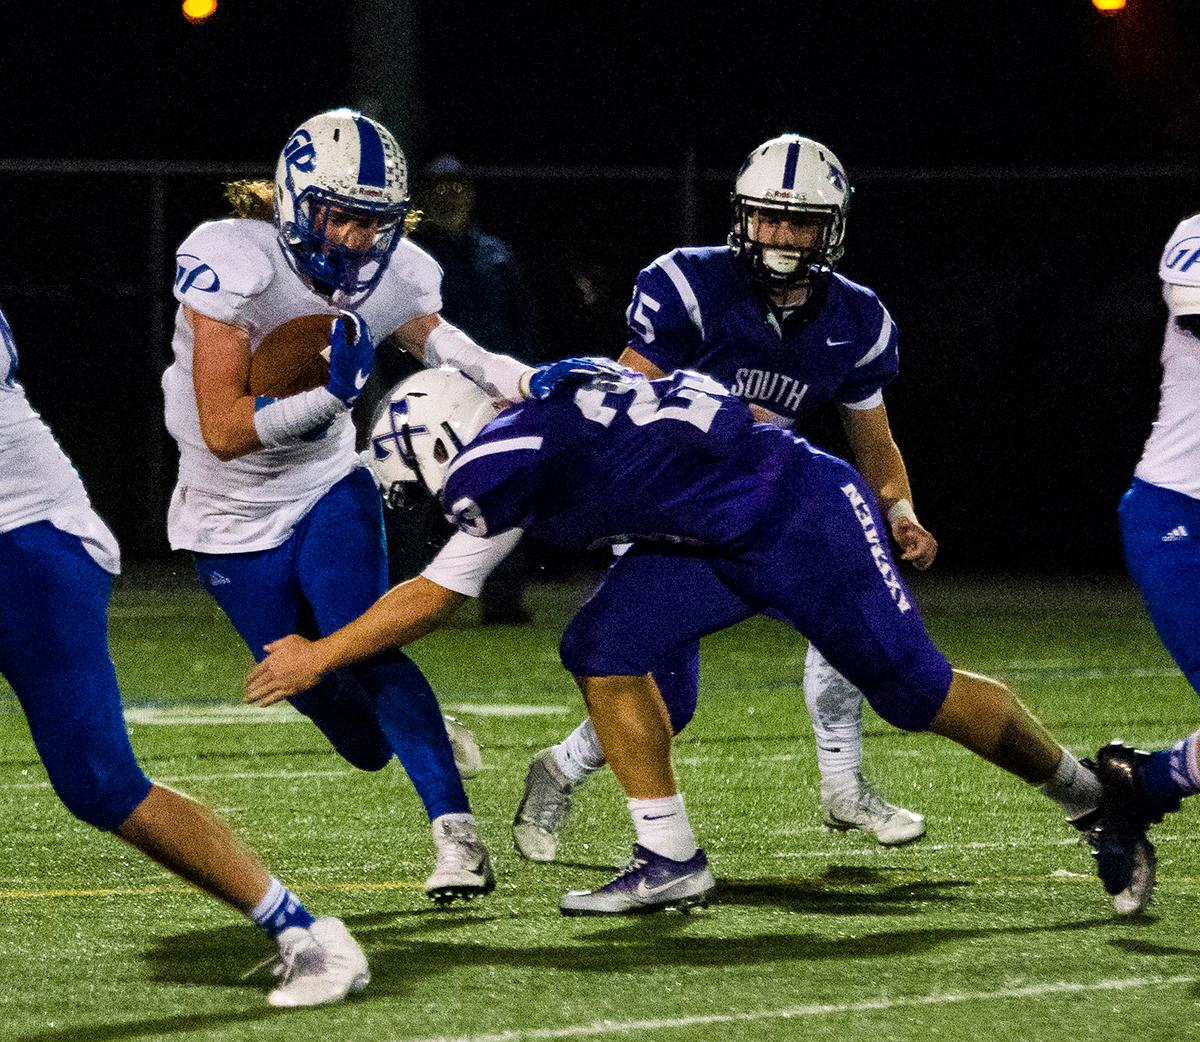 Grants Pass Cavemen Jerin Appling (#10) breaks a tackle to gain yards. Grants Pass Cavemen defeated South Eugene Axemen 13-6 on Friday night at South Eugene. Photo by Jonathan Booker, Oregon News Lab